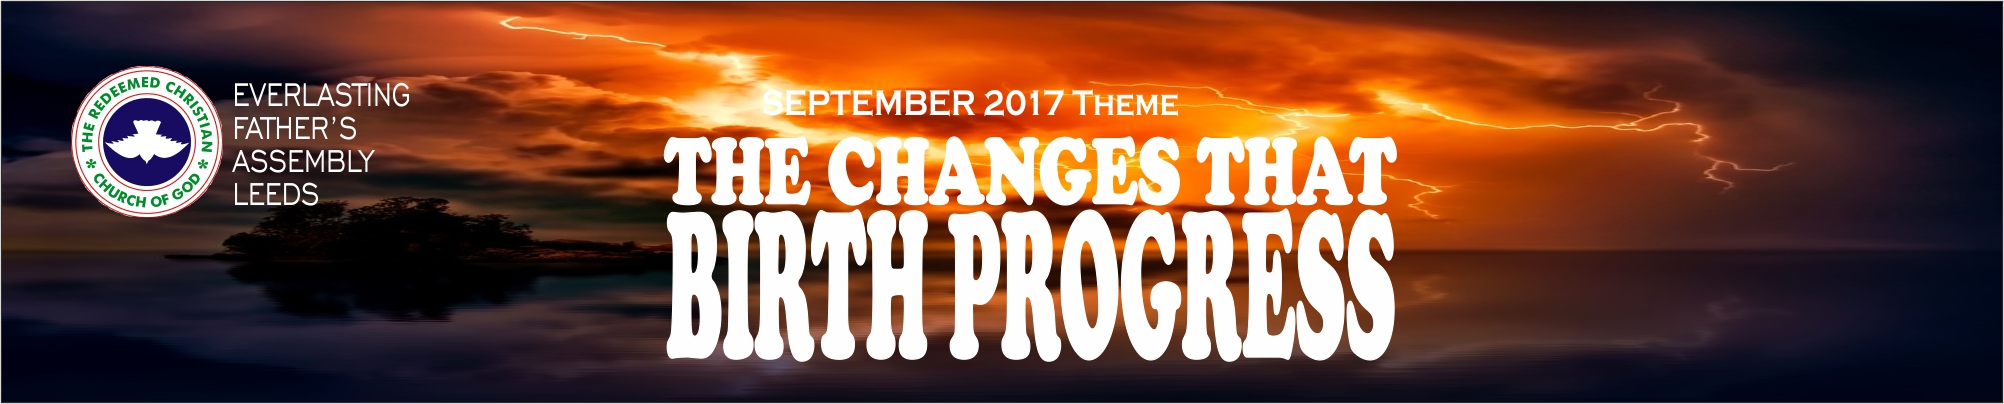 September 2017 Theme – The Changes That Birth Progress